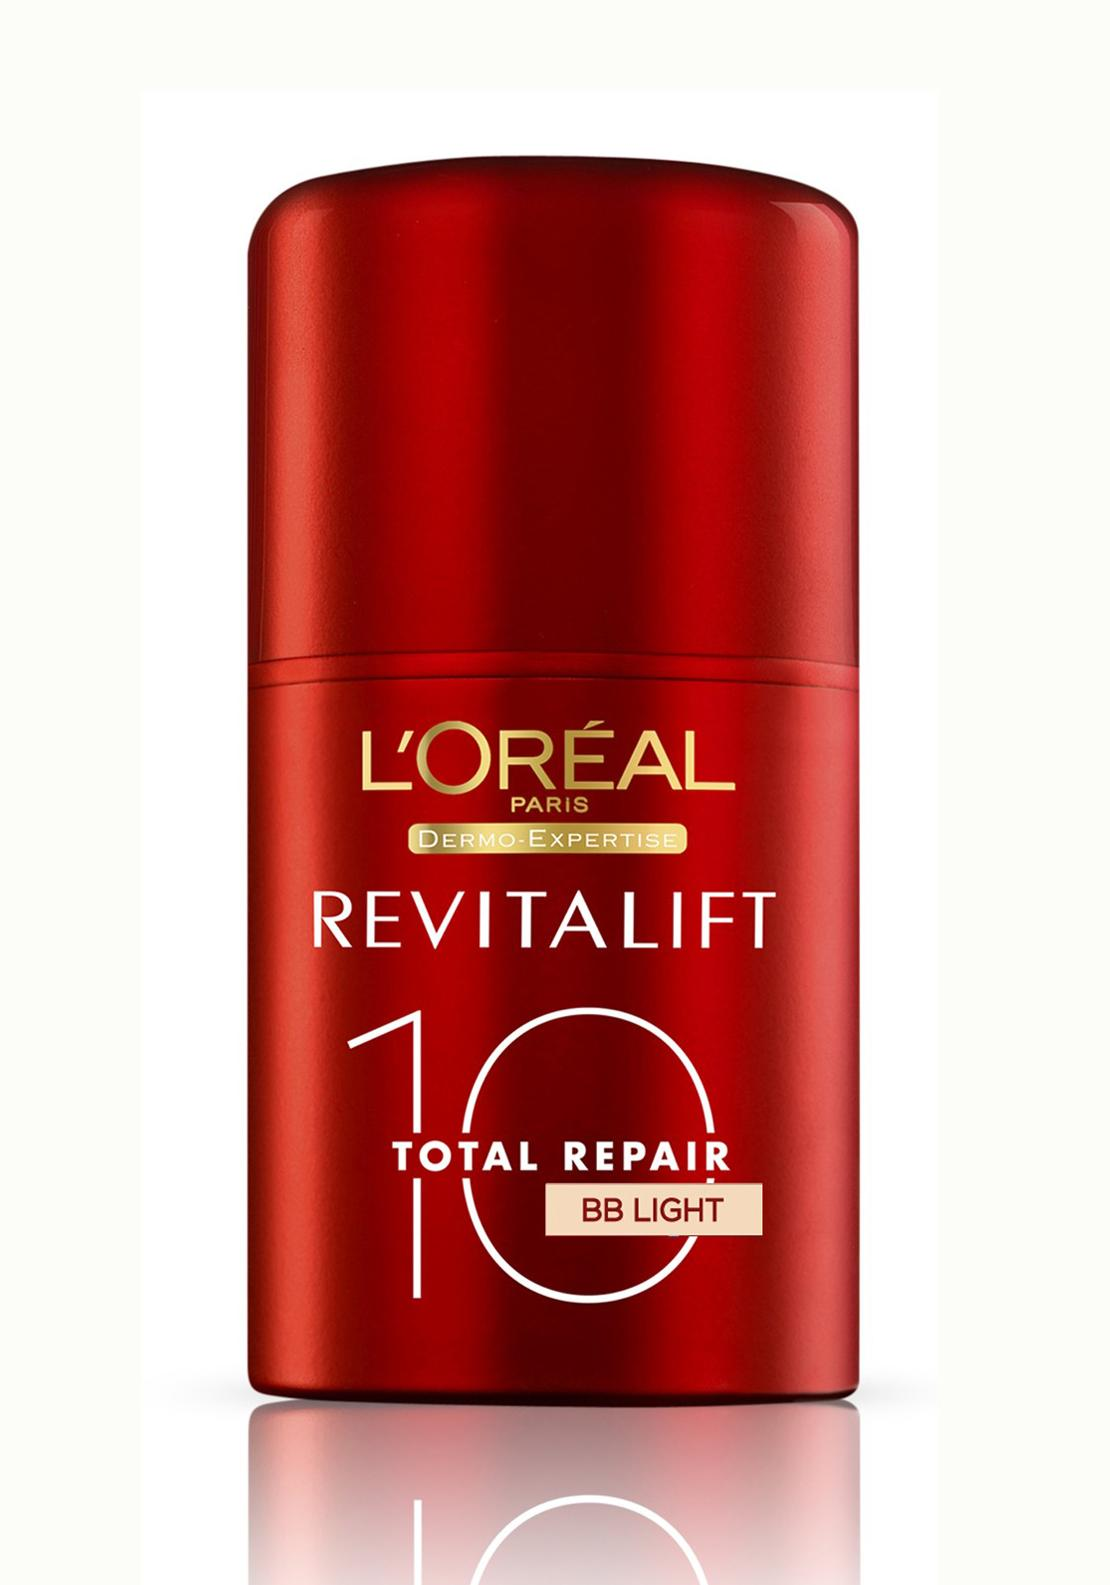 L'Oreal Revitalift Repair 10 BB Cream, Light Tinted